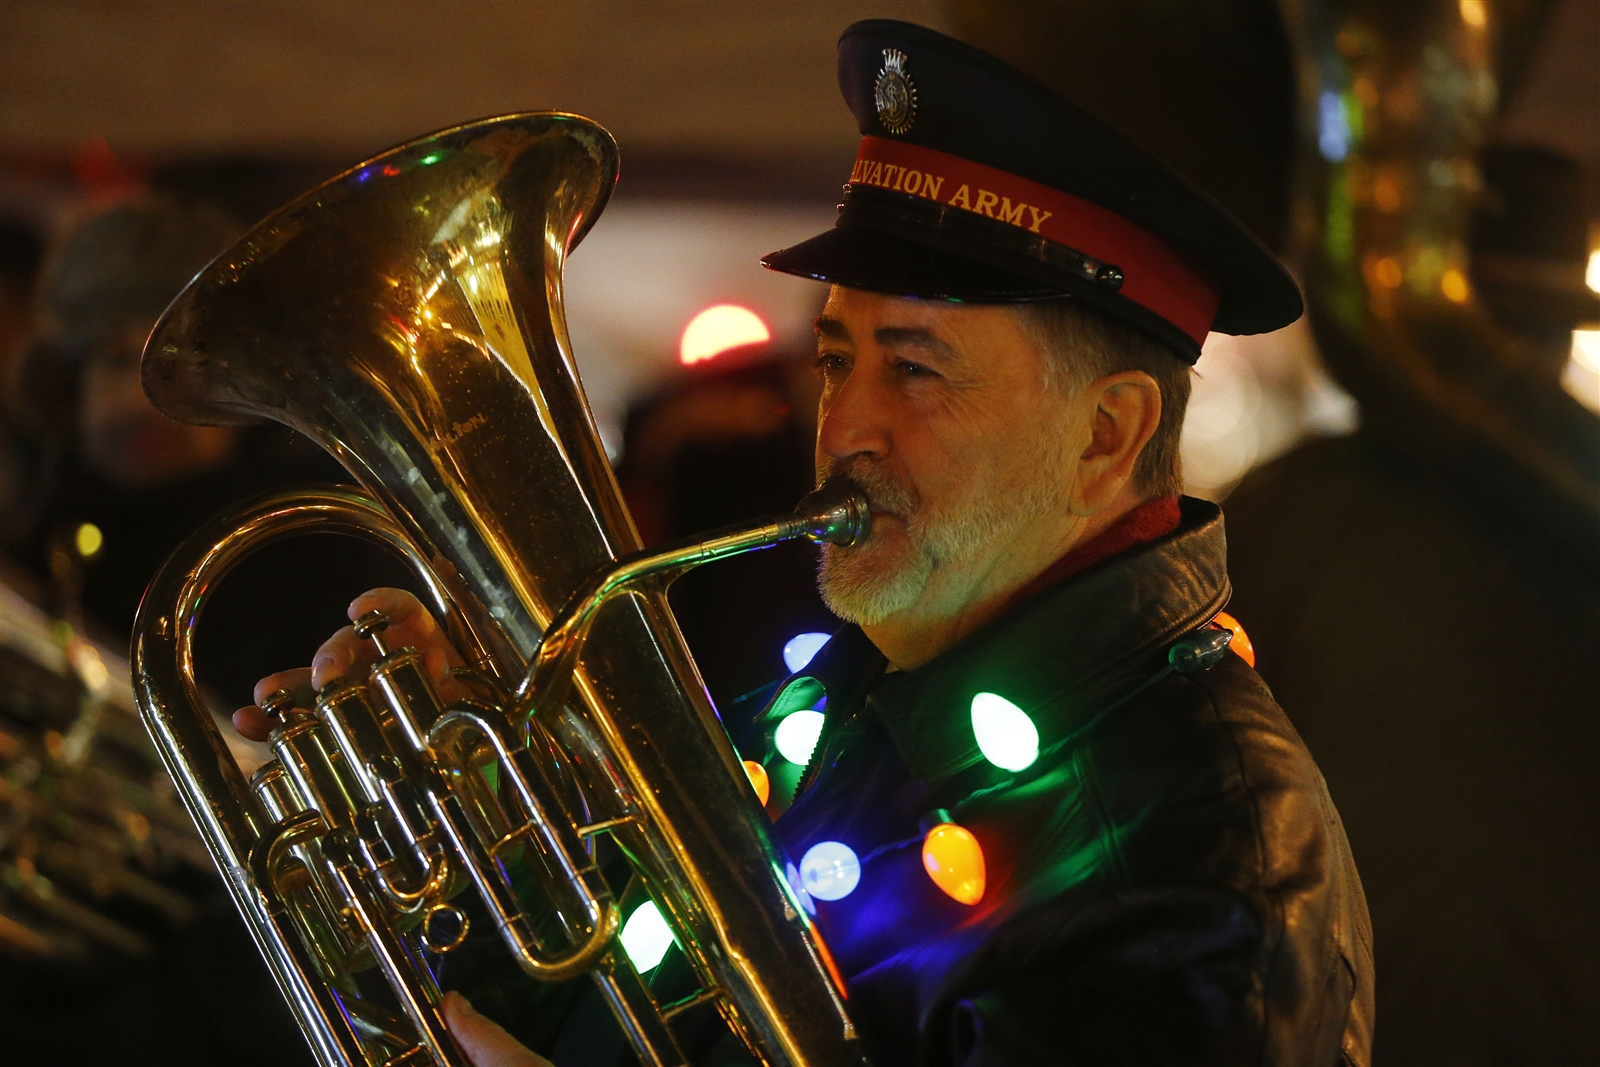 Major Tom Applin of the Salvation Army Band warms up his Euphonium on Main Street.